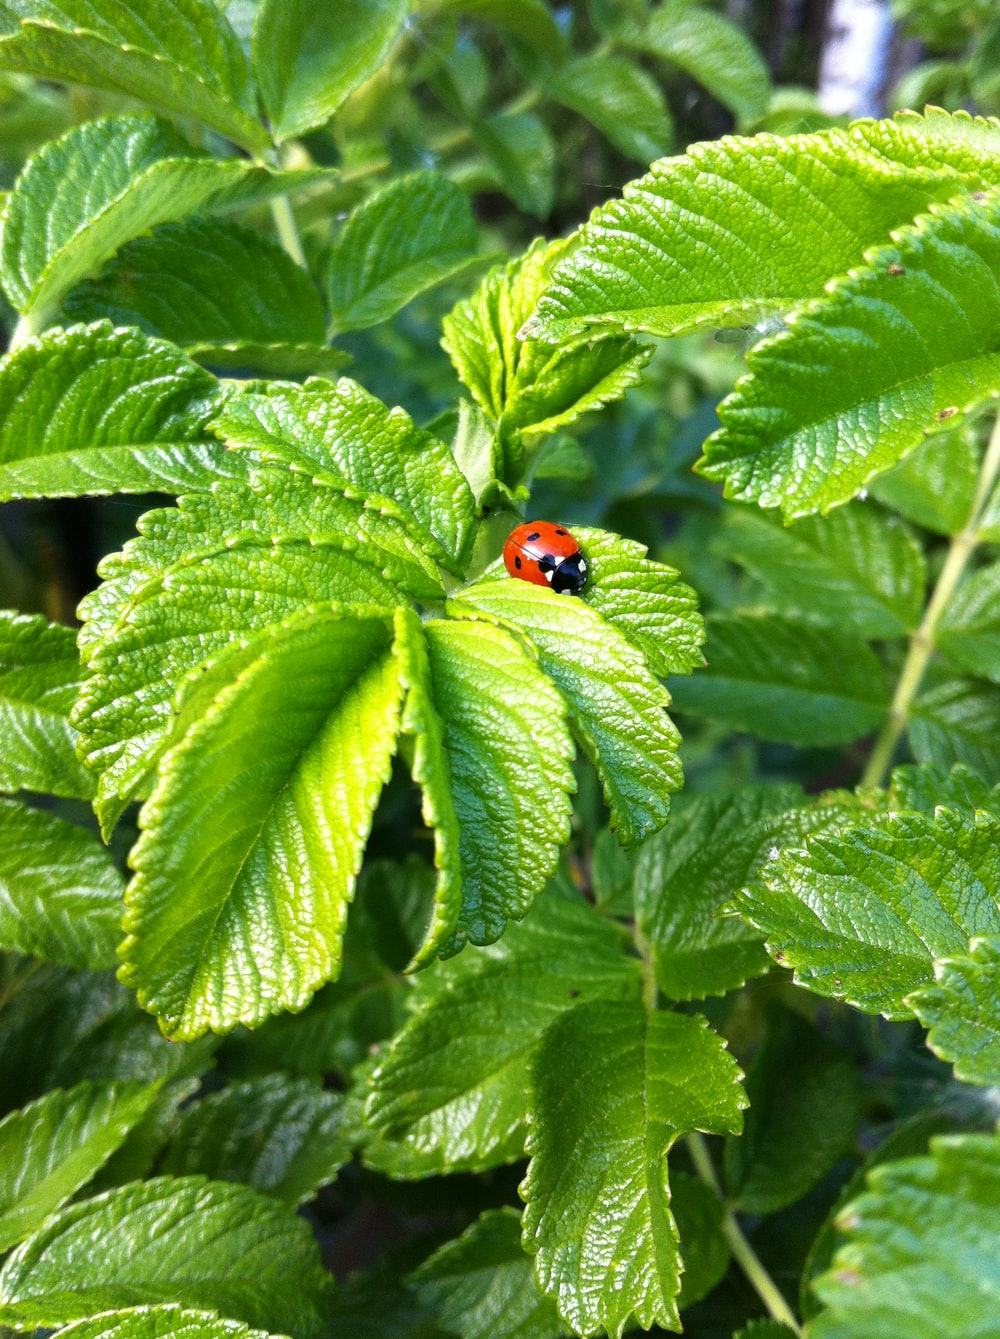 red ladybug on green leaf plant